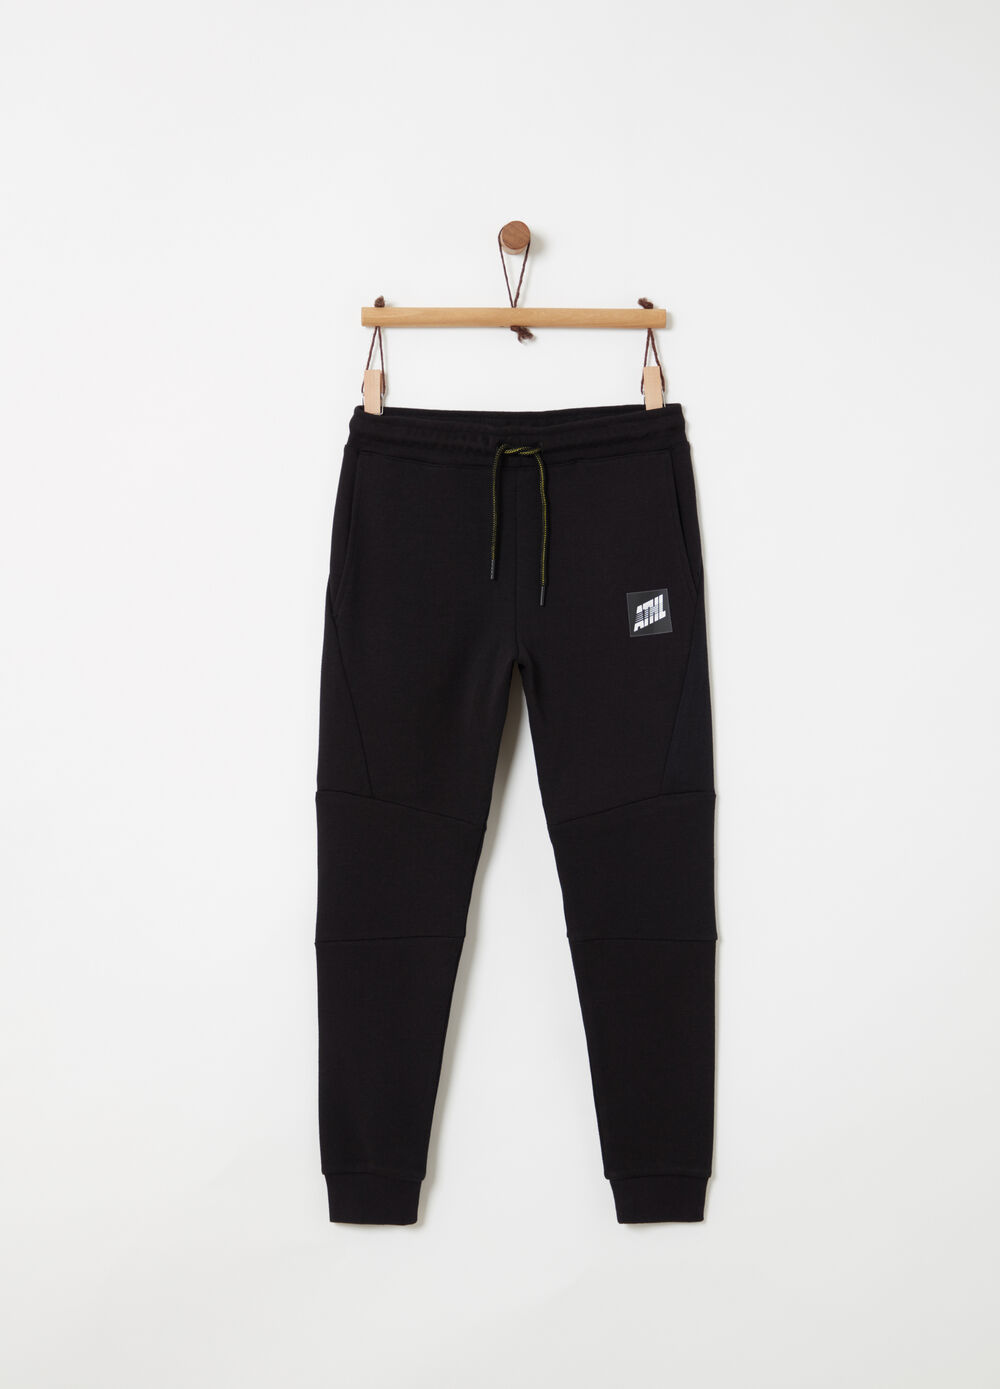 Interlock trousers with rubber print